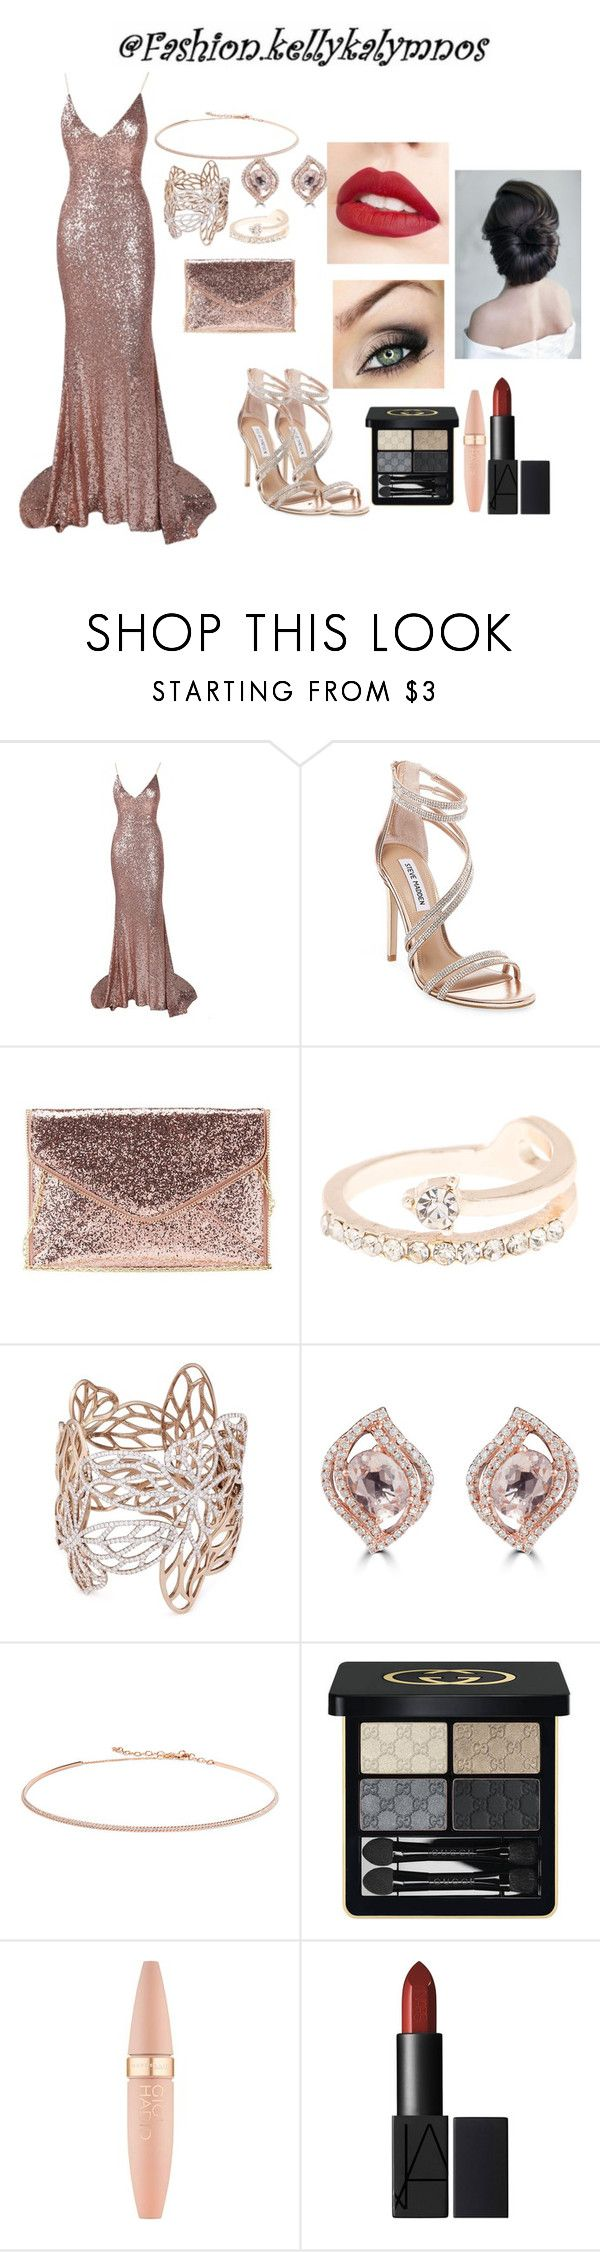 """Rose gold beauty"" by kellykalymnoskd on Polyvore featuring Steve Madden, Charlotte Russe, Anyallerie, Effy Jewelry, Diane Kordas, Gucci, Maybelline and Jouer"